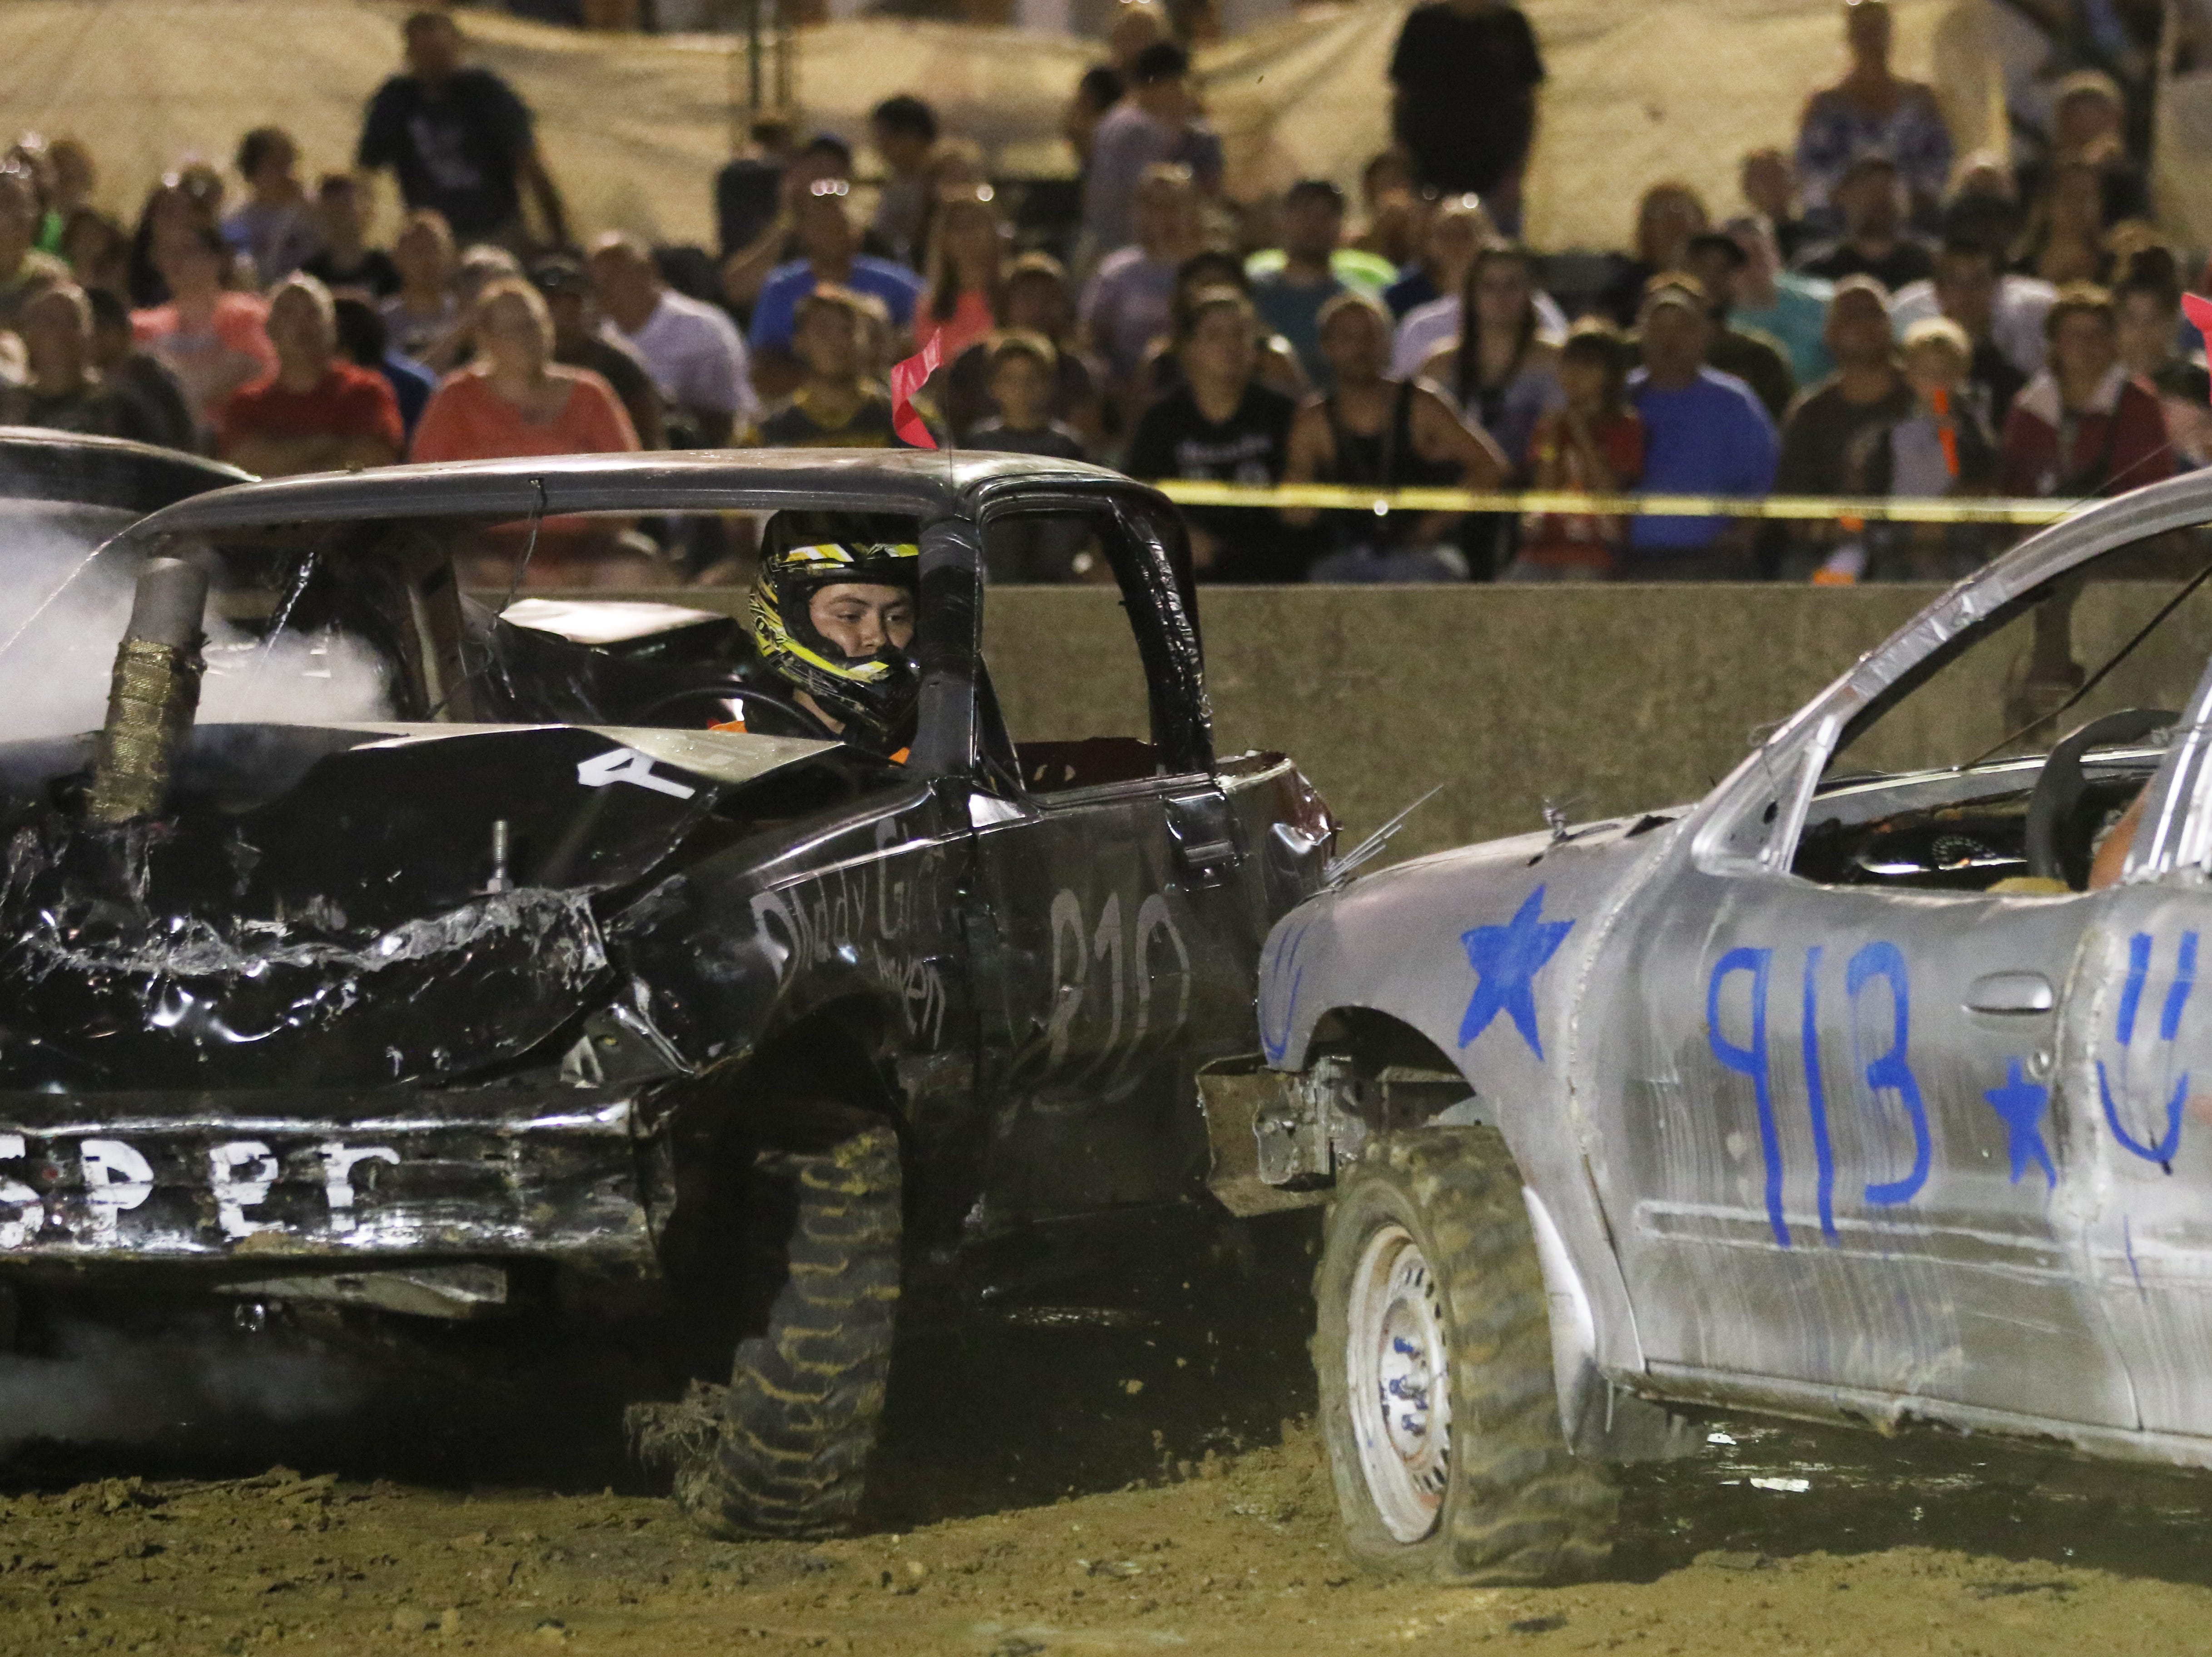 Robert Anderson gets hit by Brian Paul during the Sarge and Sons Demolition Derby at the Muskingum County Fair on Tuesday.